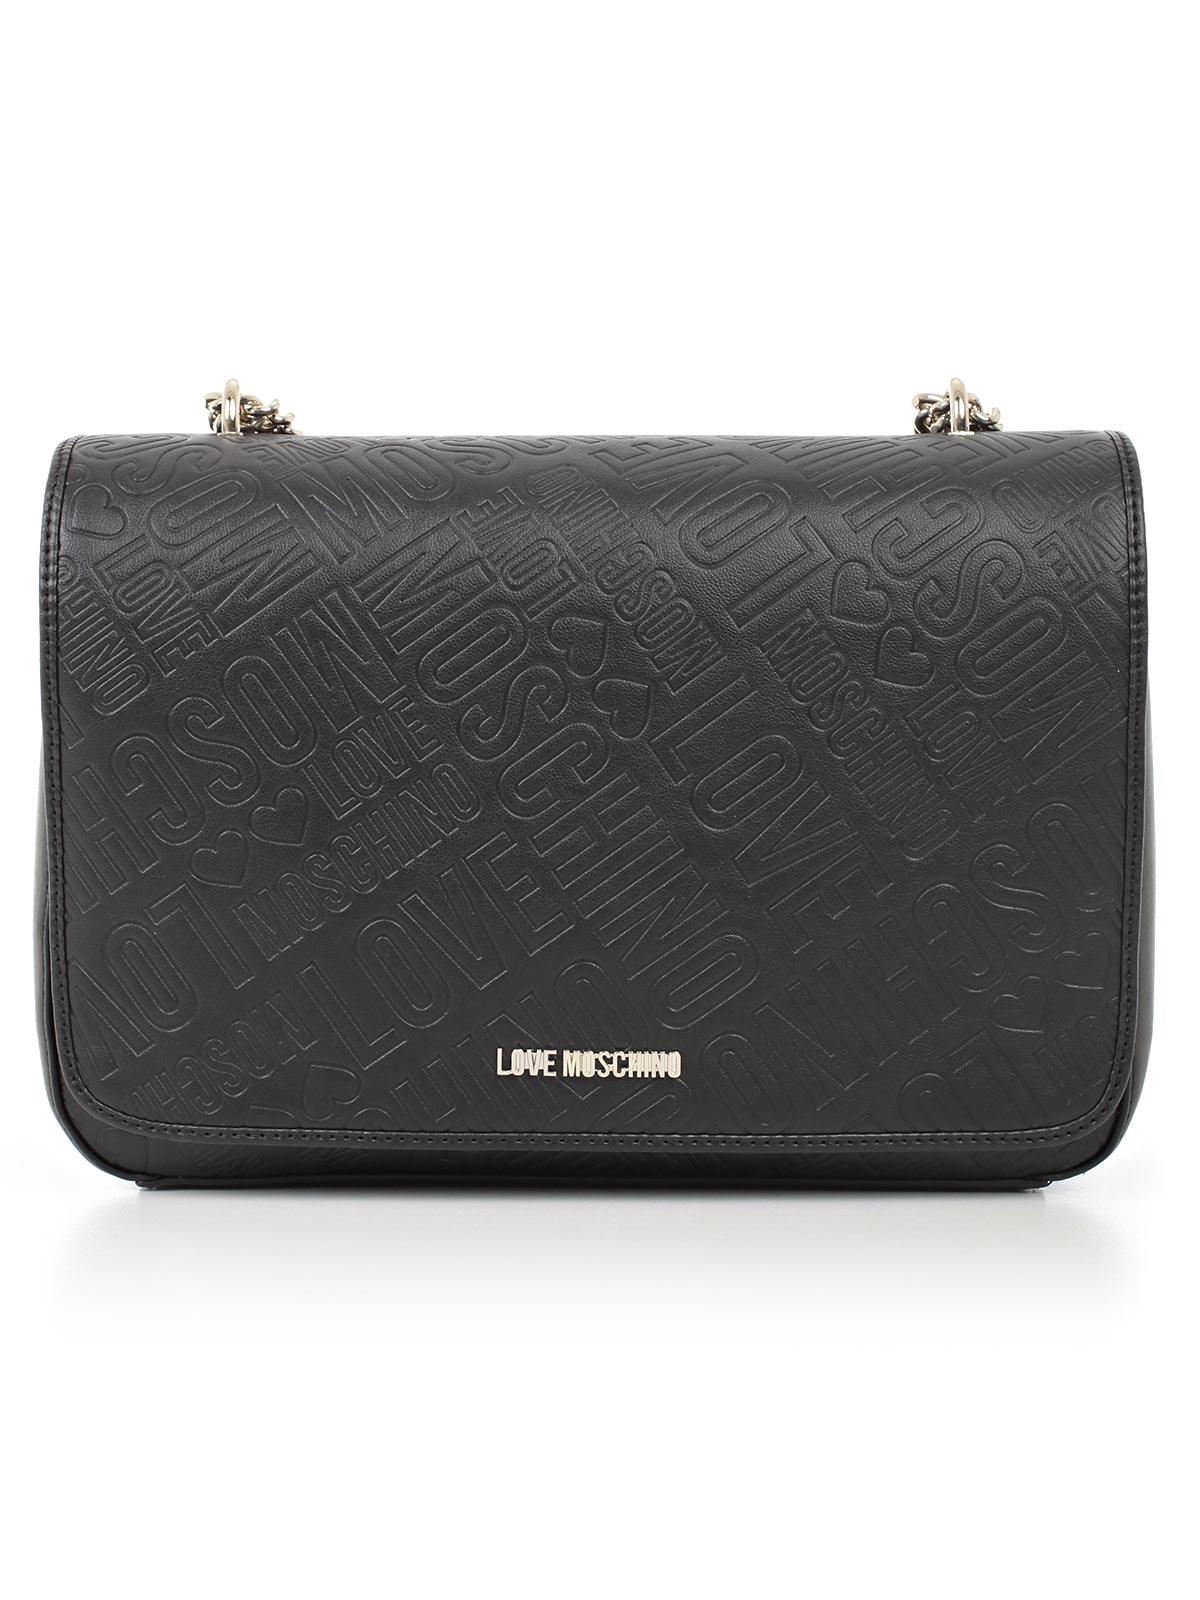 Picture of LOVE MOSCHINO BAG FLAP EMBOSSED